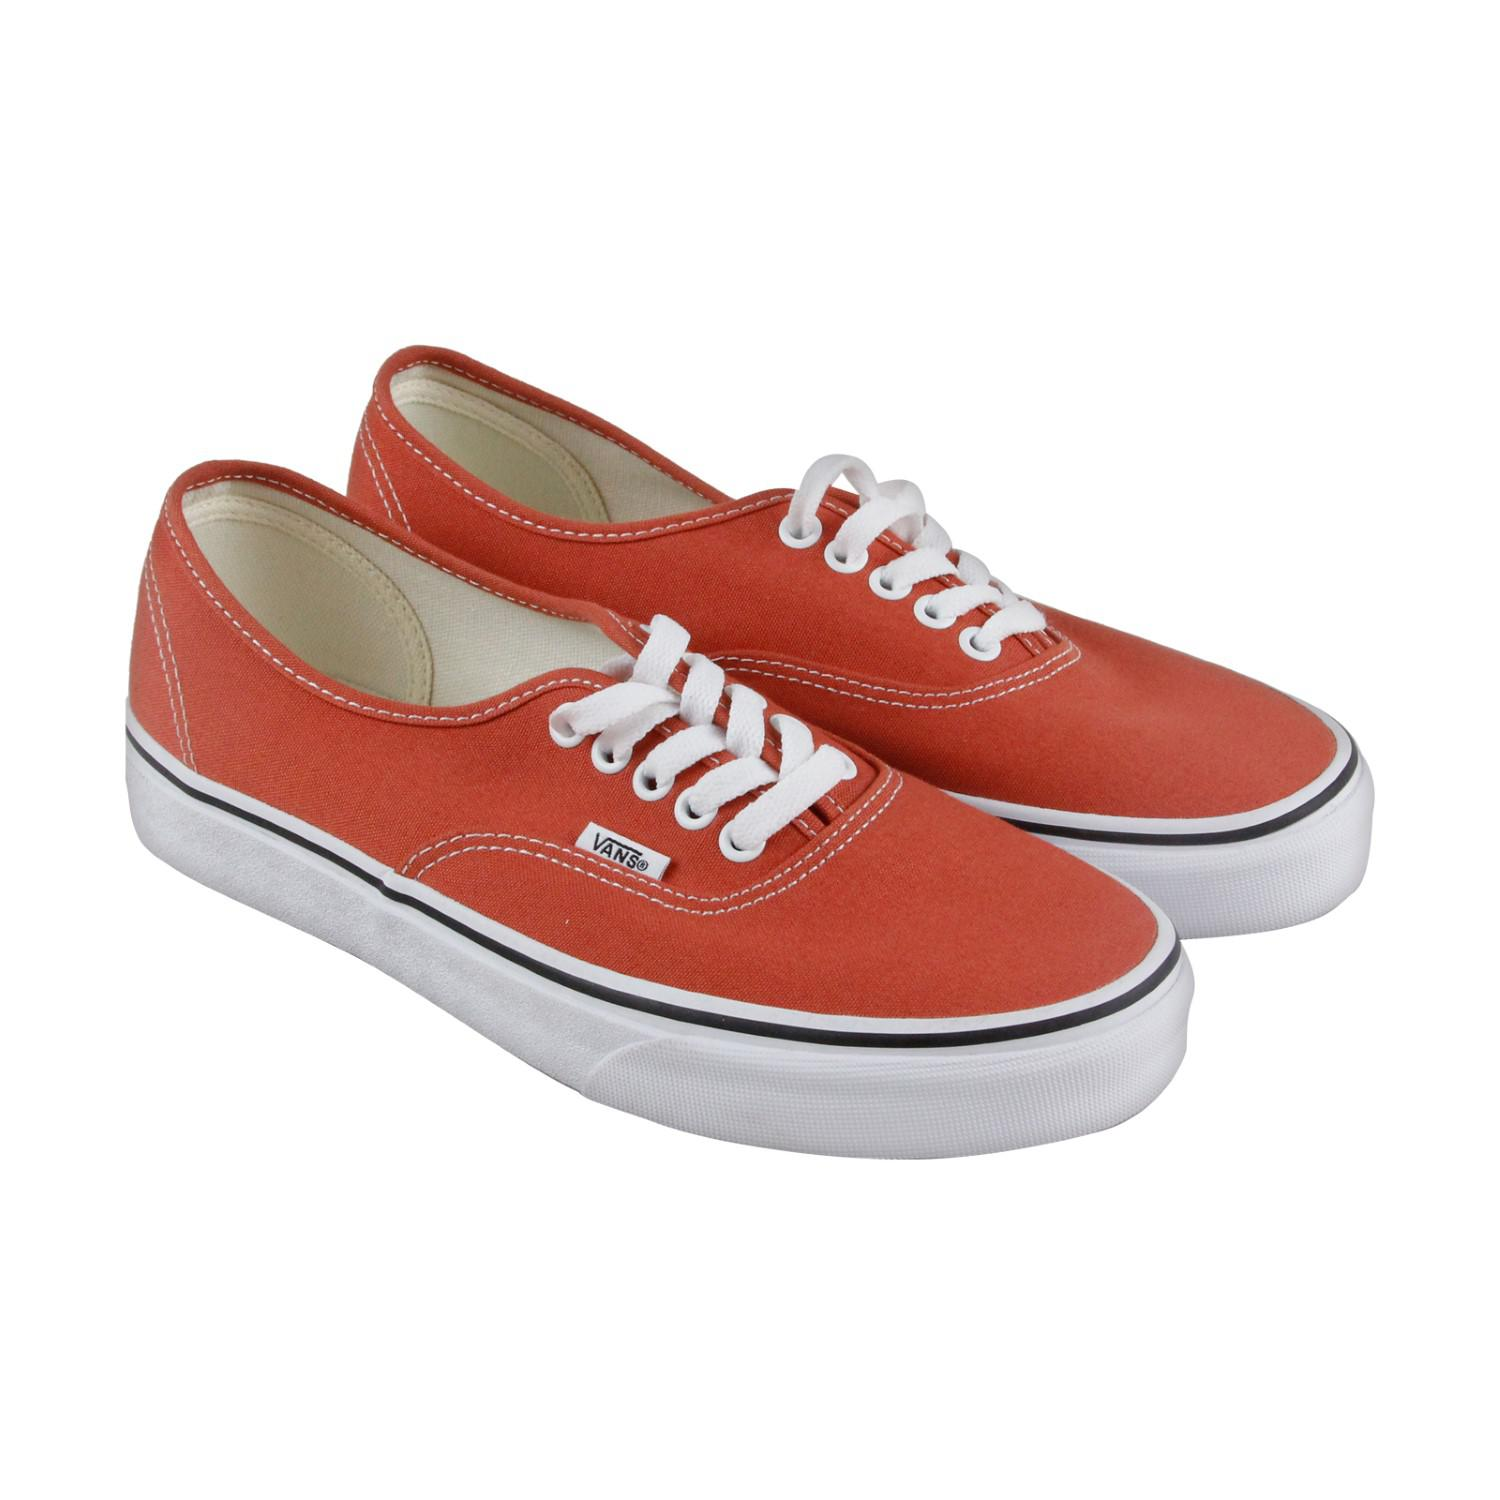 c49a39c5b7 Lyst - Vans Authentic Autumn Glaze True White Lace Up Sneakers in ...